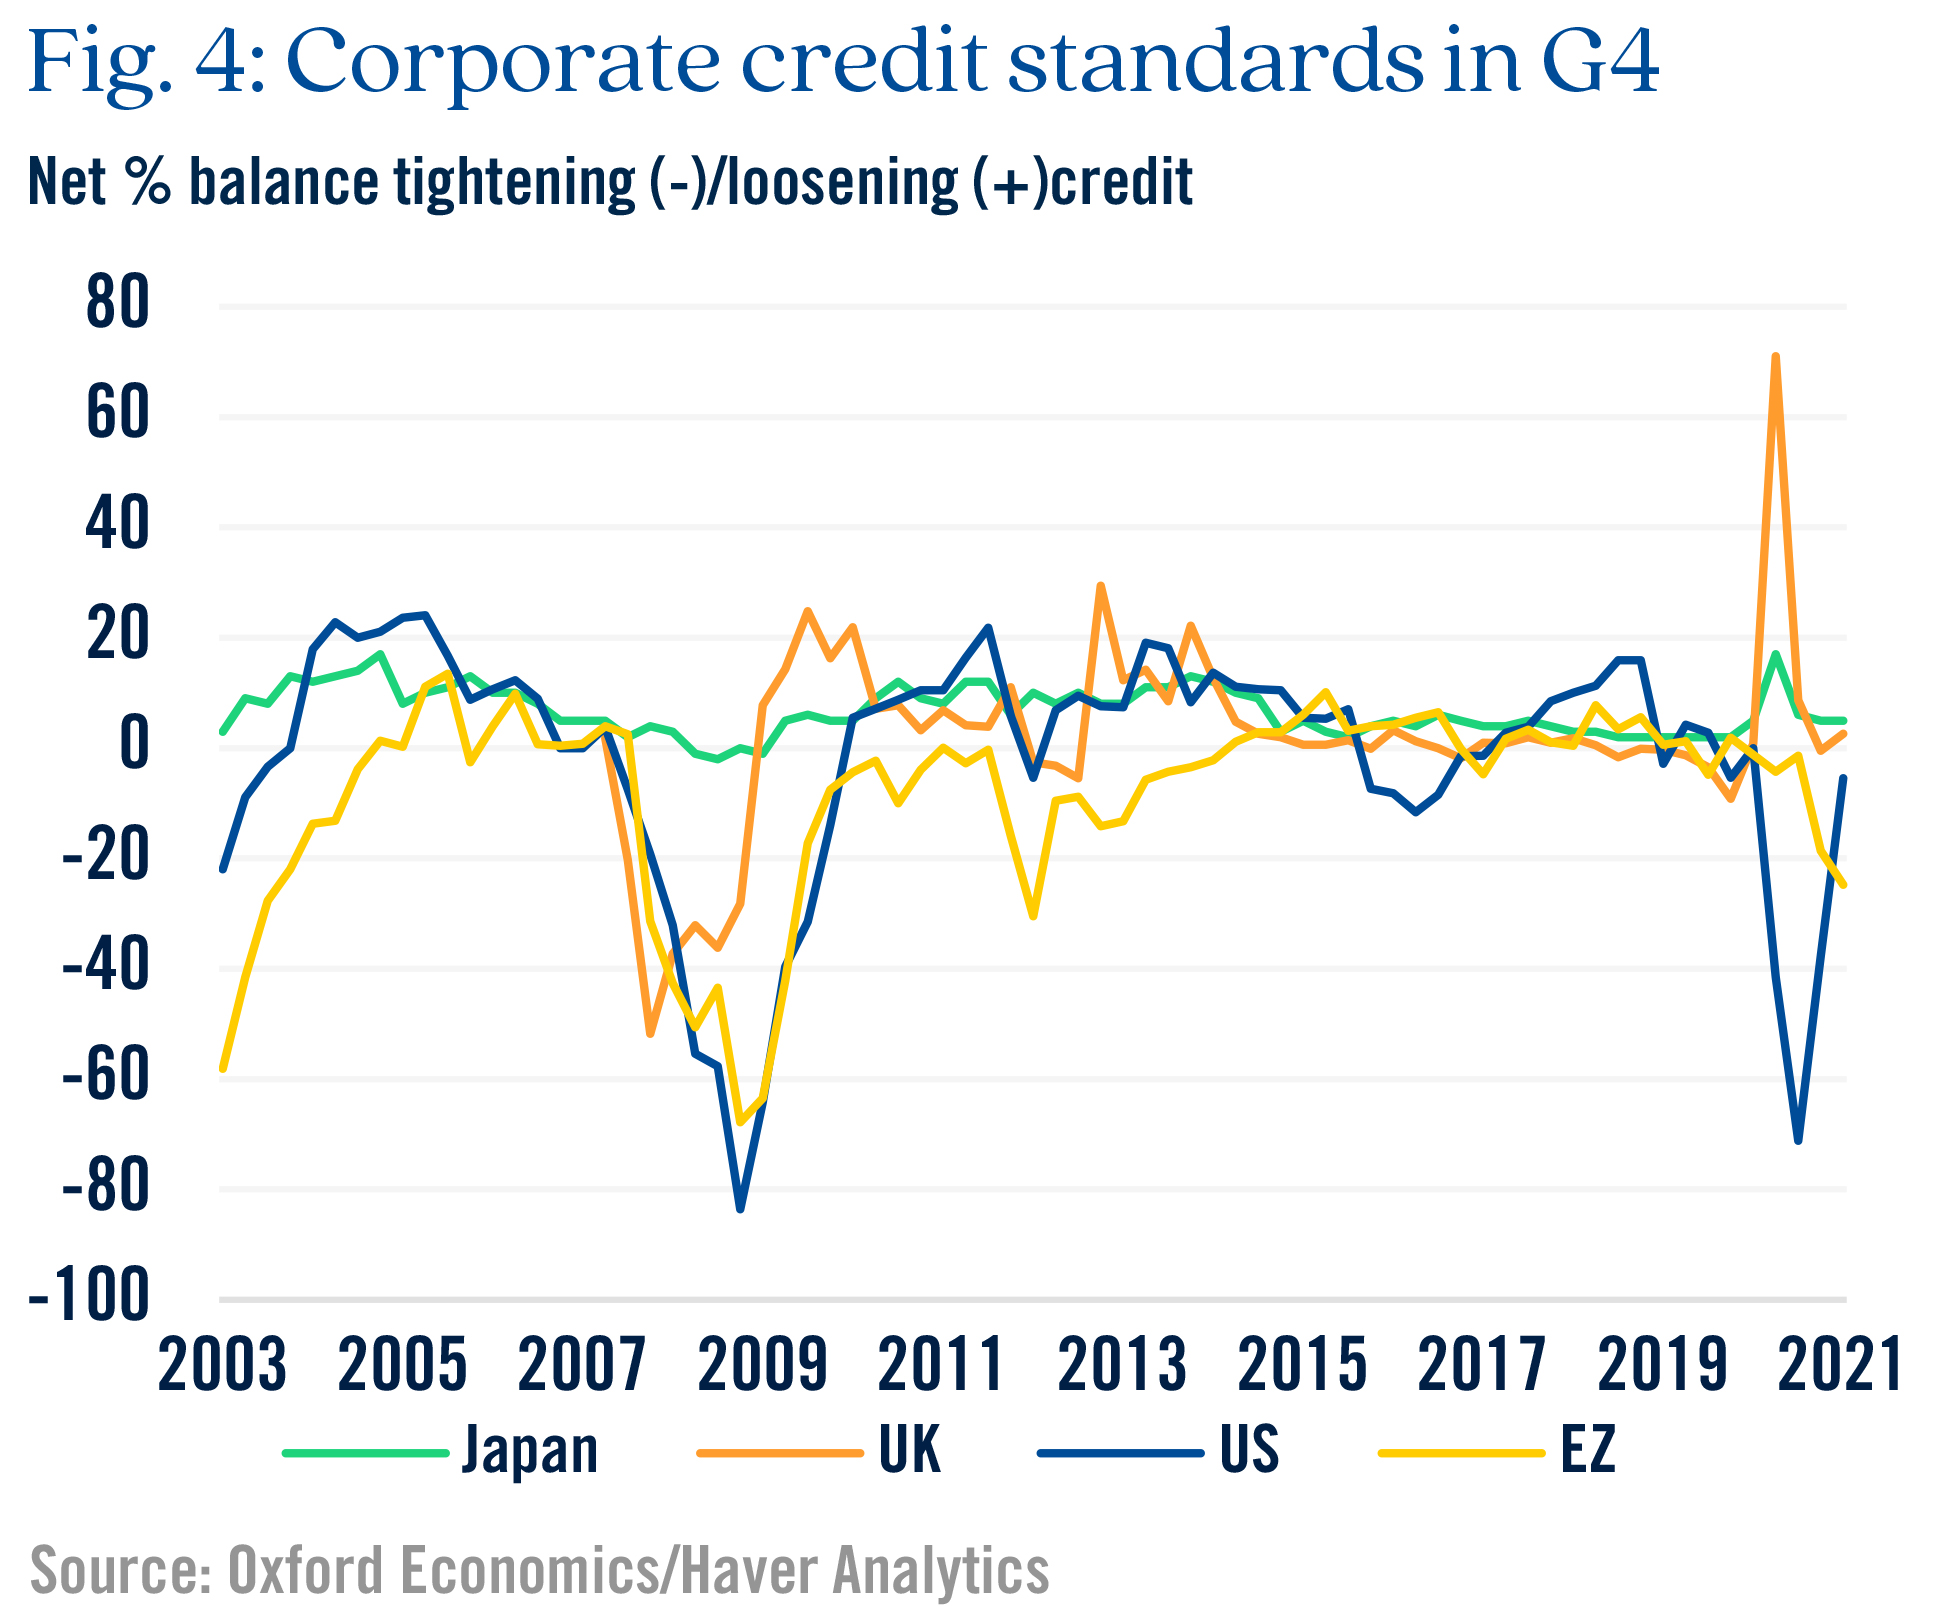 Figure 4 corporate credit standards in G4